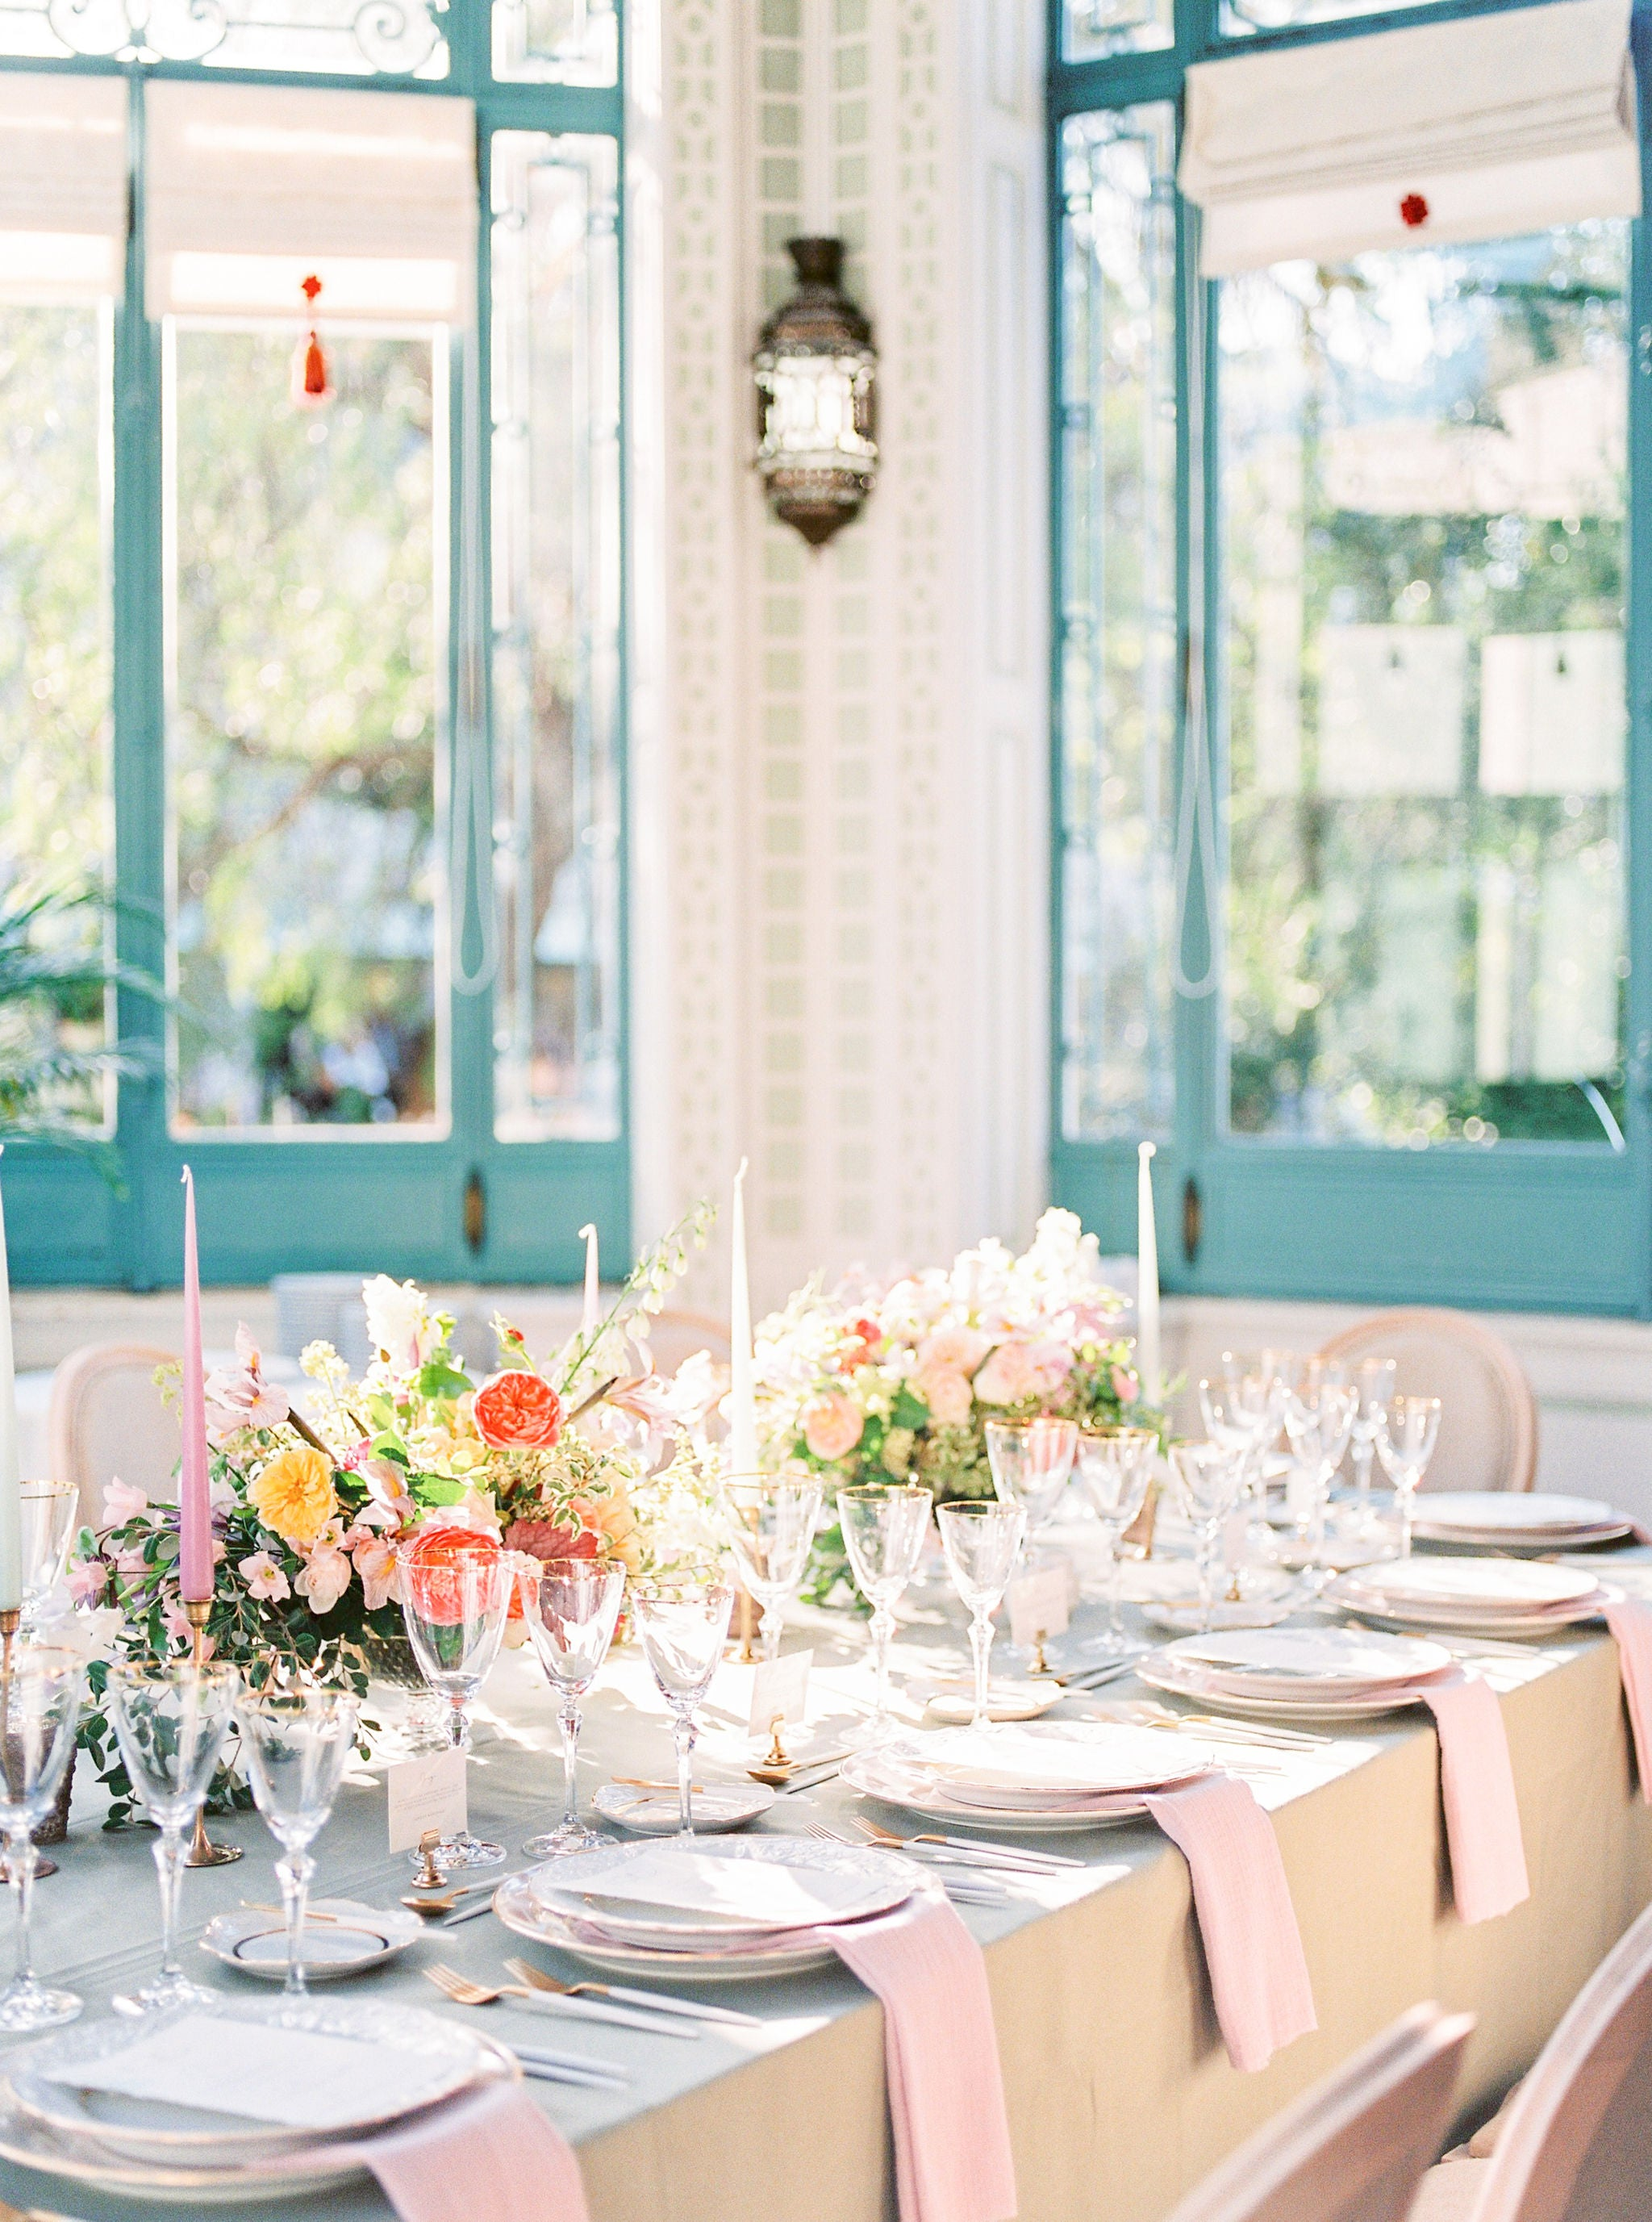 bella belle summer wedding inspiration reception table decor